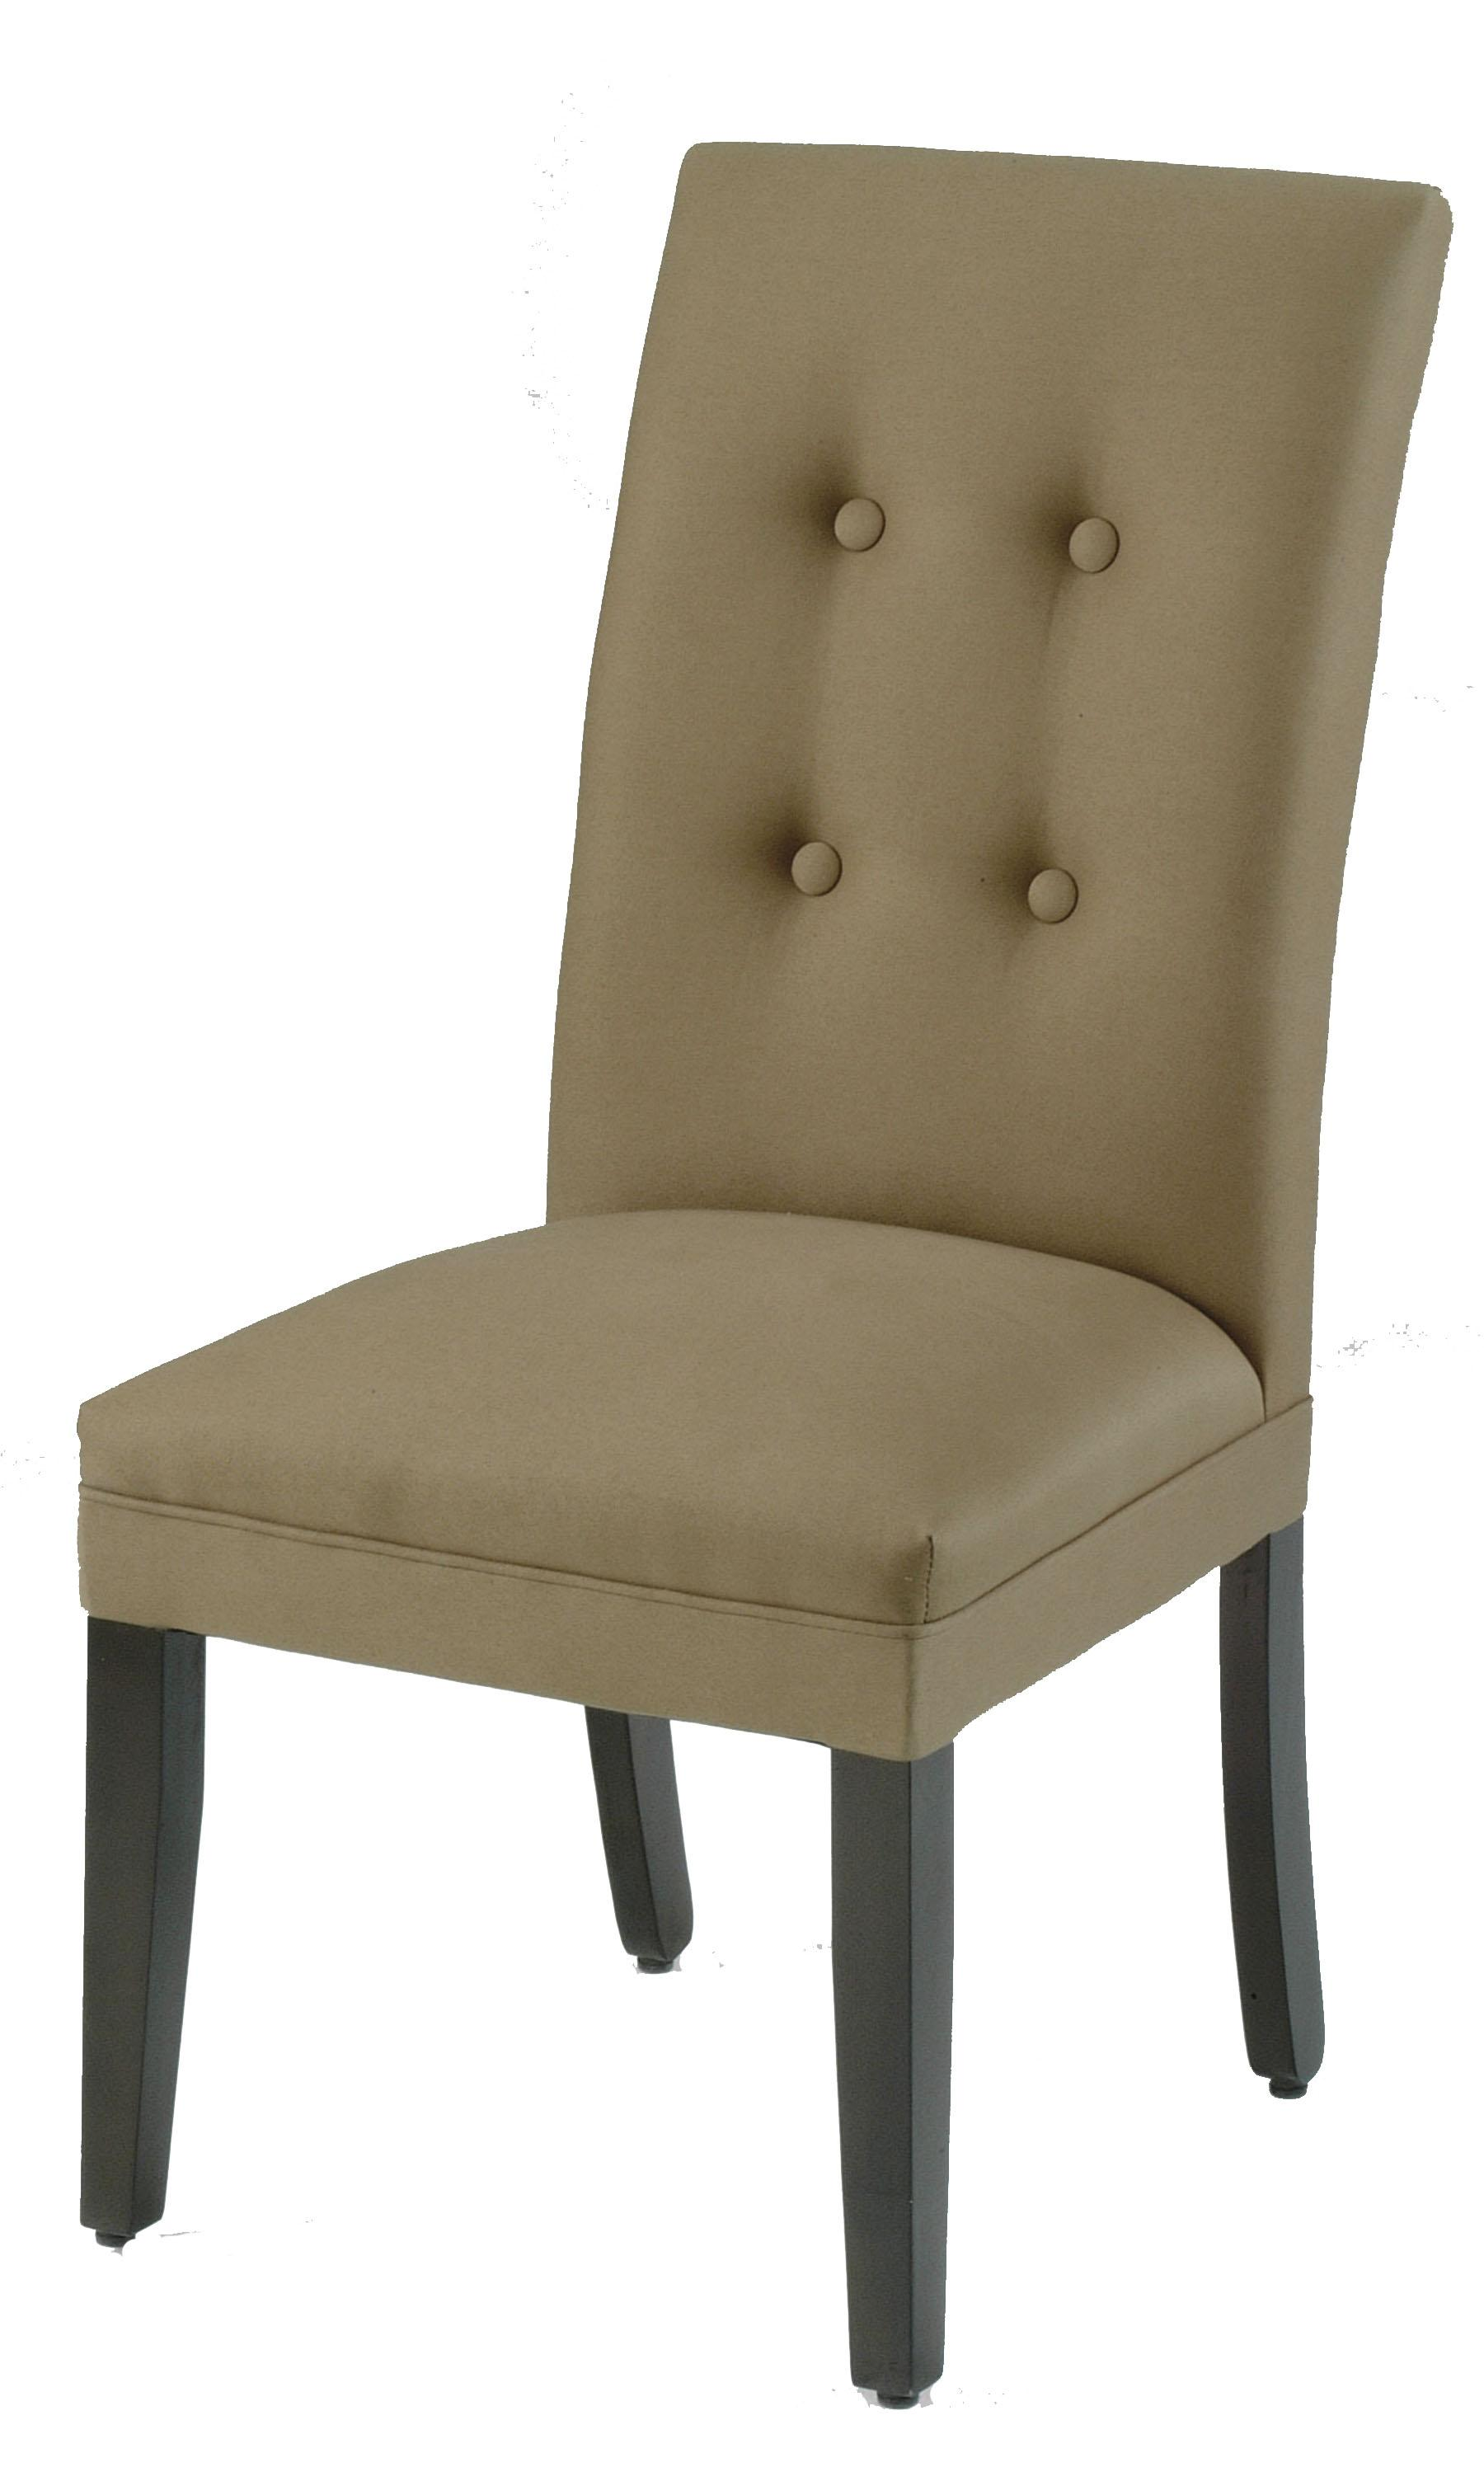 Upholstered Parson Chair with Skirt by CMI